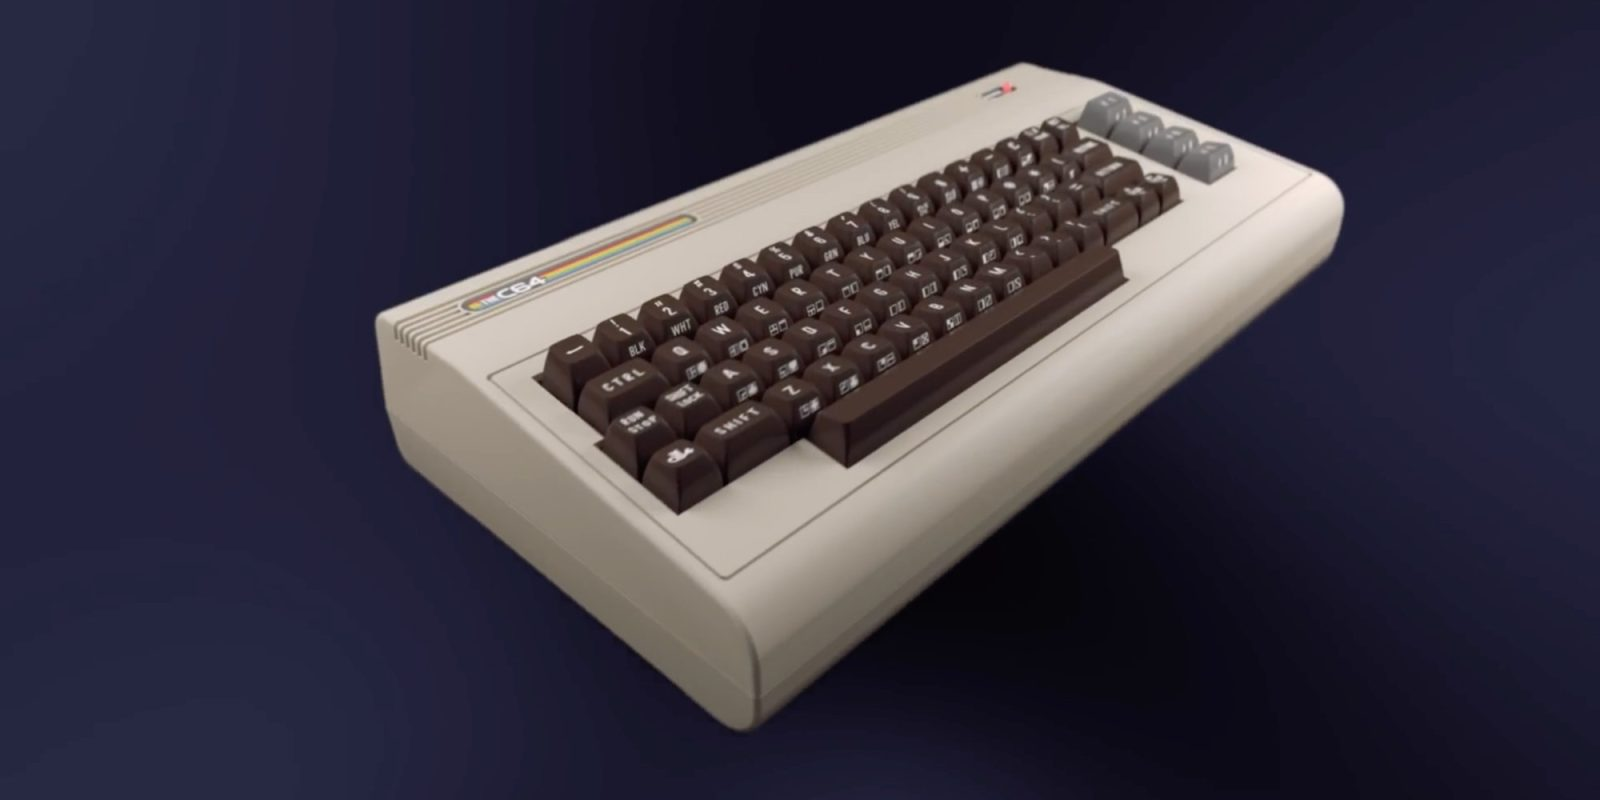 Retro Games unveils THEC64, a full-size Commodore 64 clone - 9to5Toys